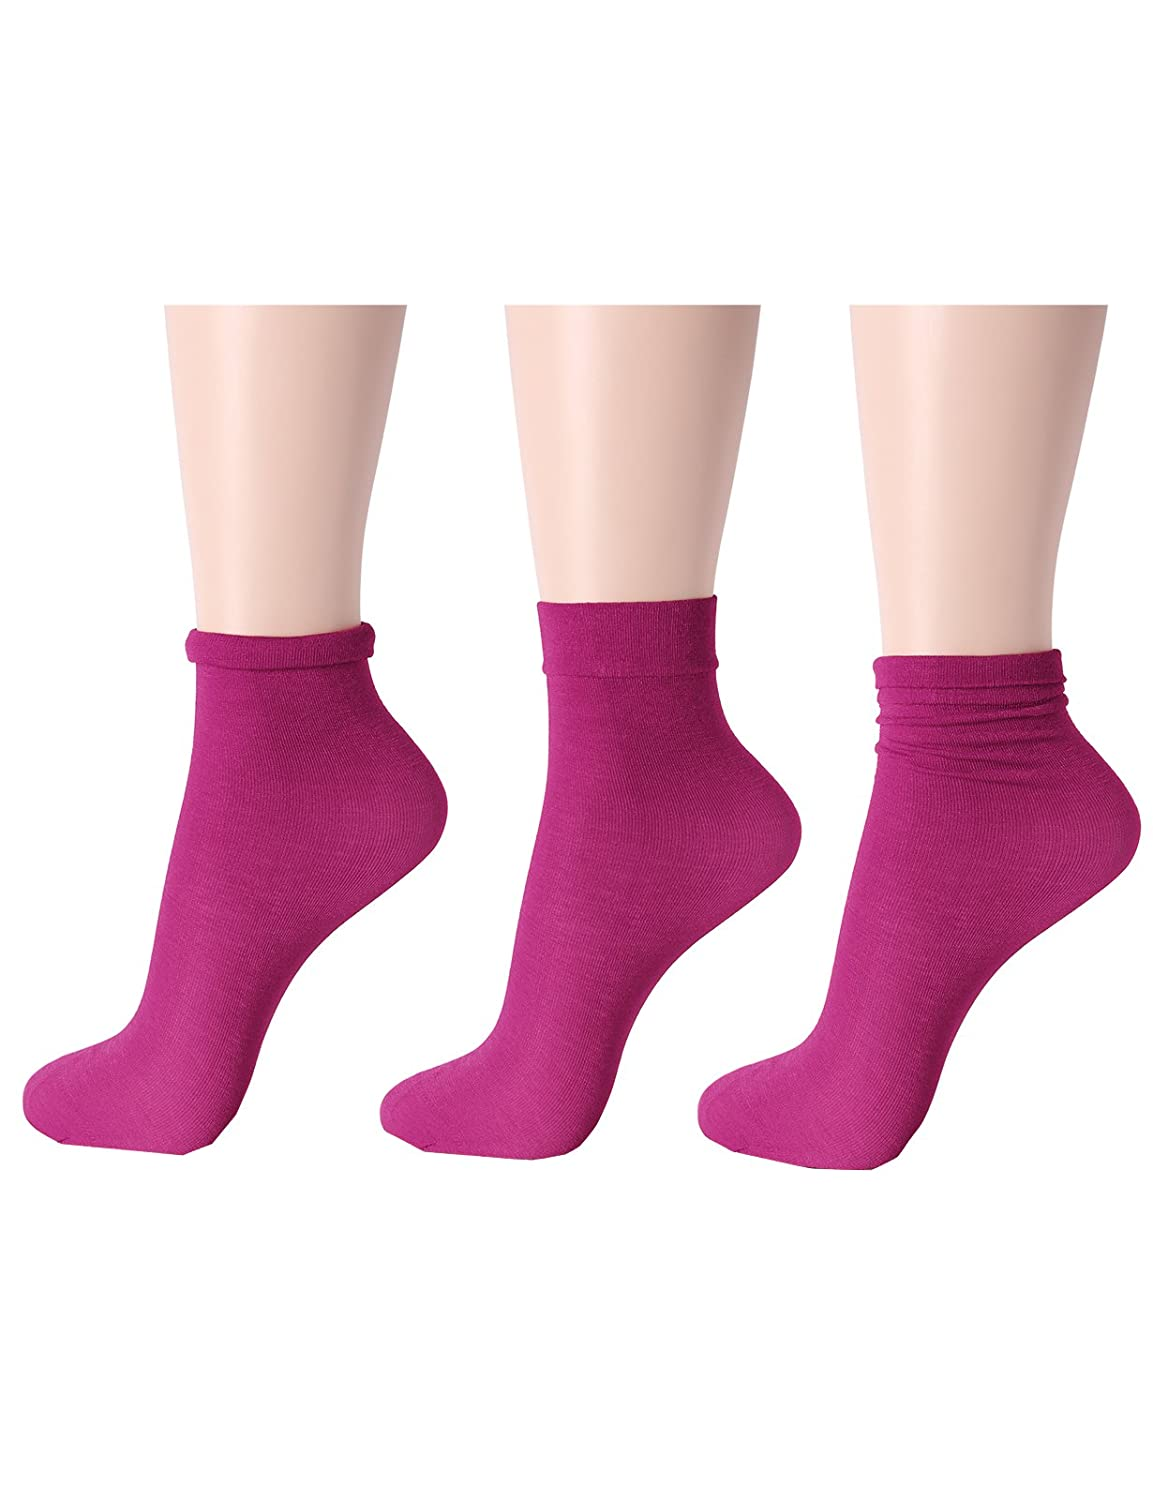 OSABASA Women 5or 10 Pairs Color Nylon Ankle High Tights Hosiery Socks